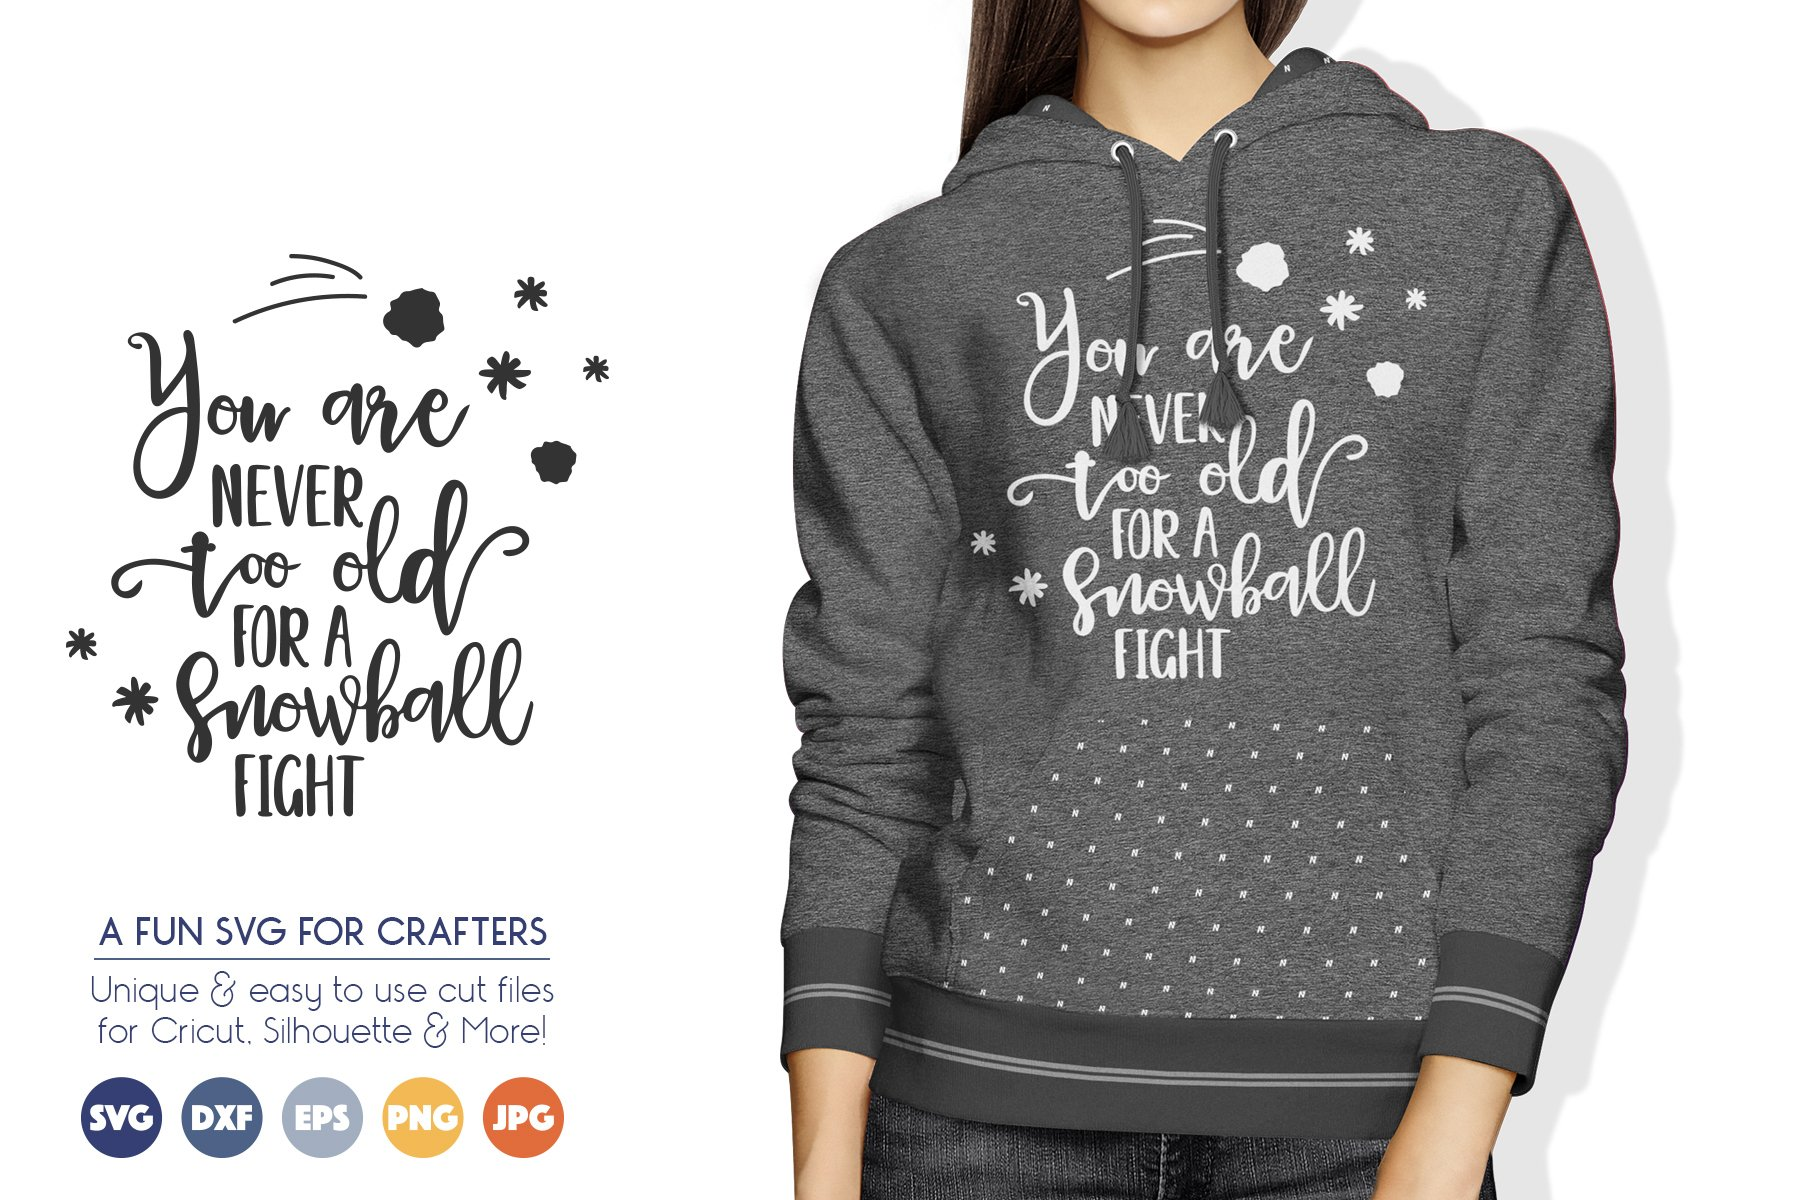 Winter SVG File for Crafters - Snowball Fight example image 1